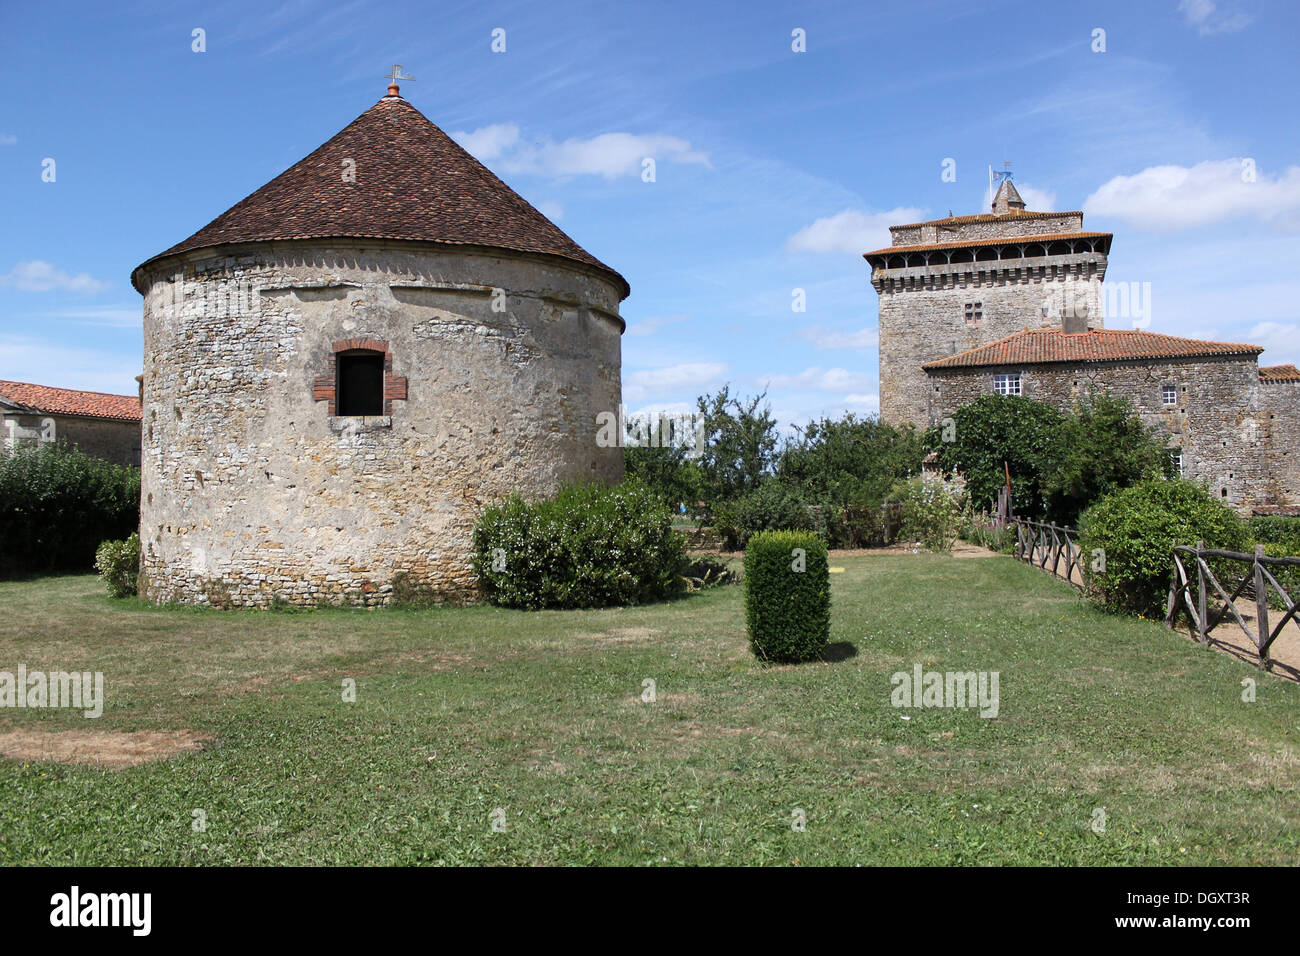 Historical Pigeon Loft Of Stones   Medieval Garden Of Bazoges En Pareds    Vendée (France)